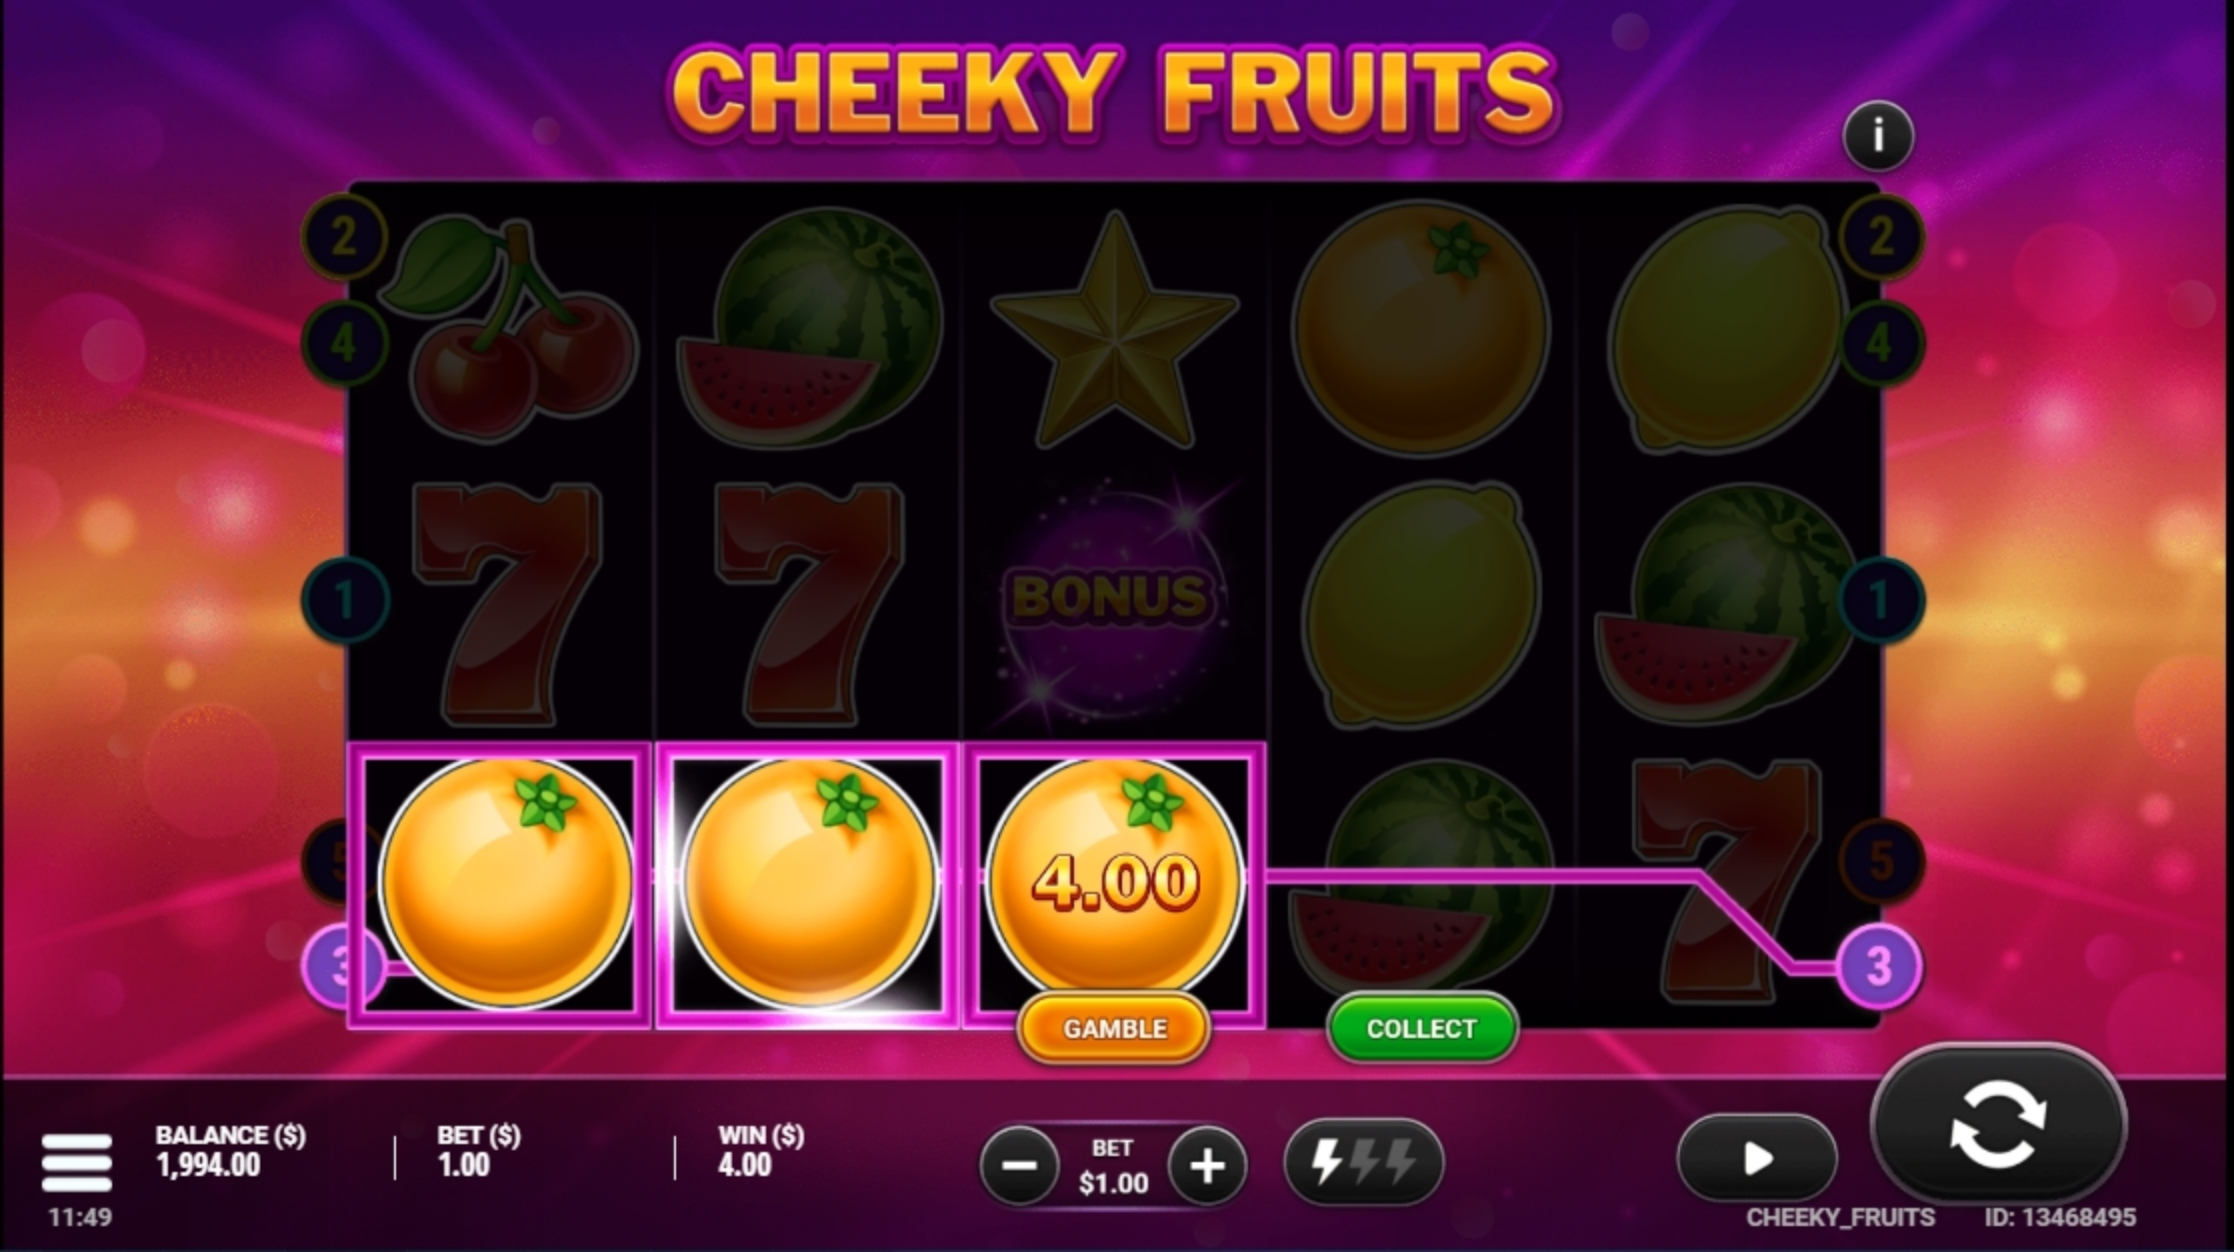 Win Money in Cheeky Fruits Free Slot Game by Gluck Games